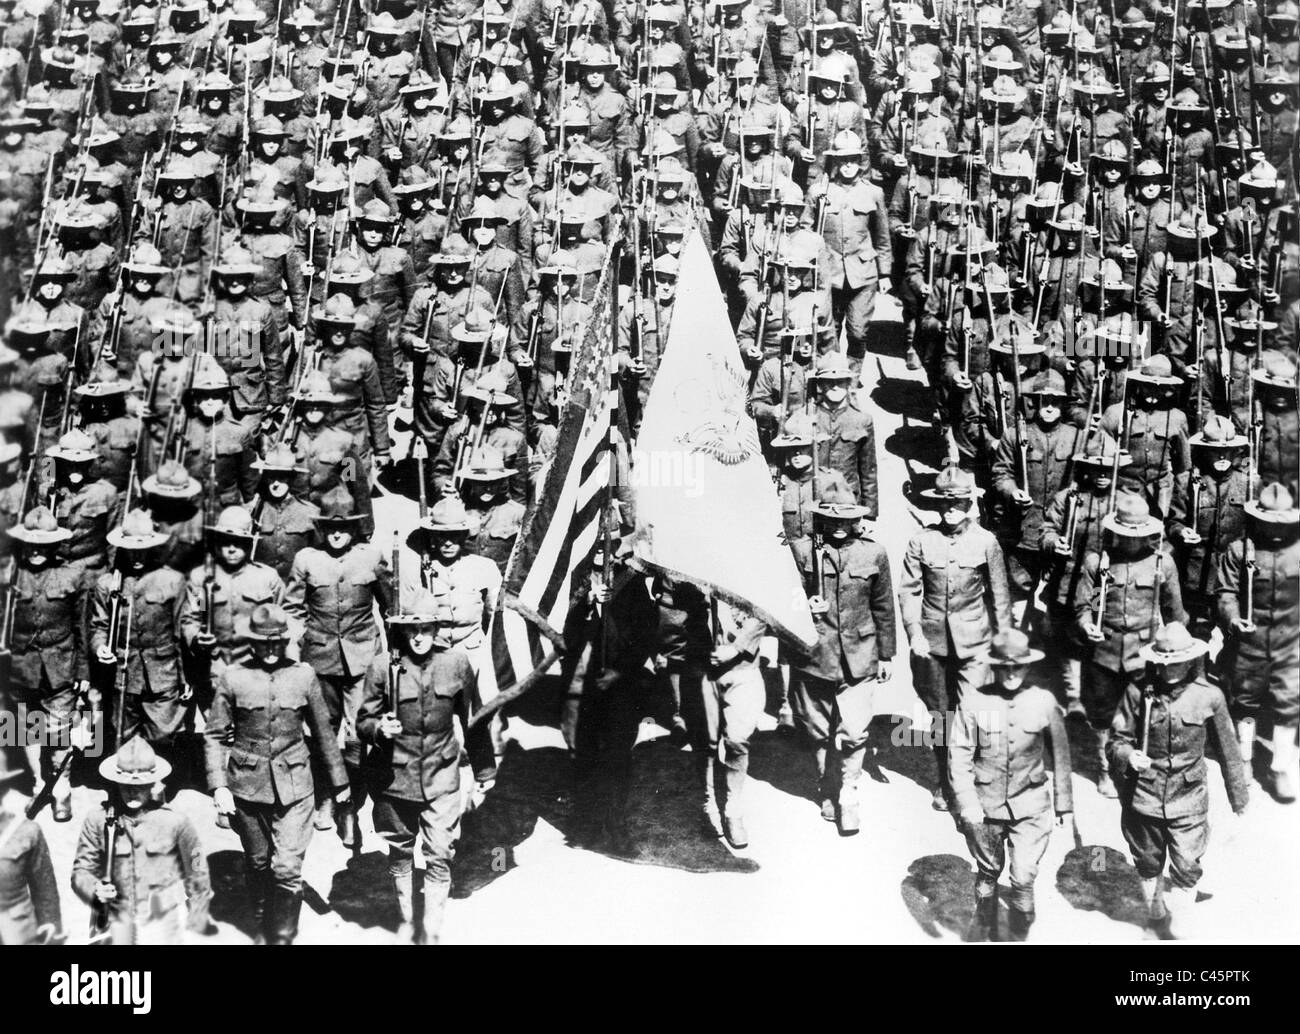 Parade of American soldiers in Paris, 1918 Stock Photo